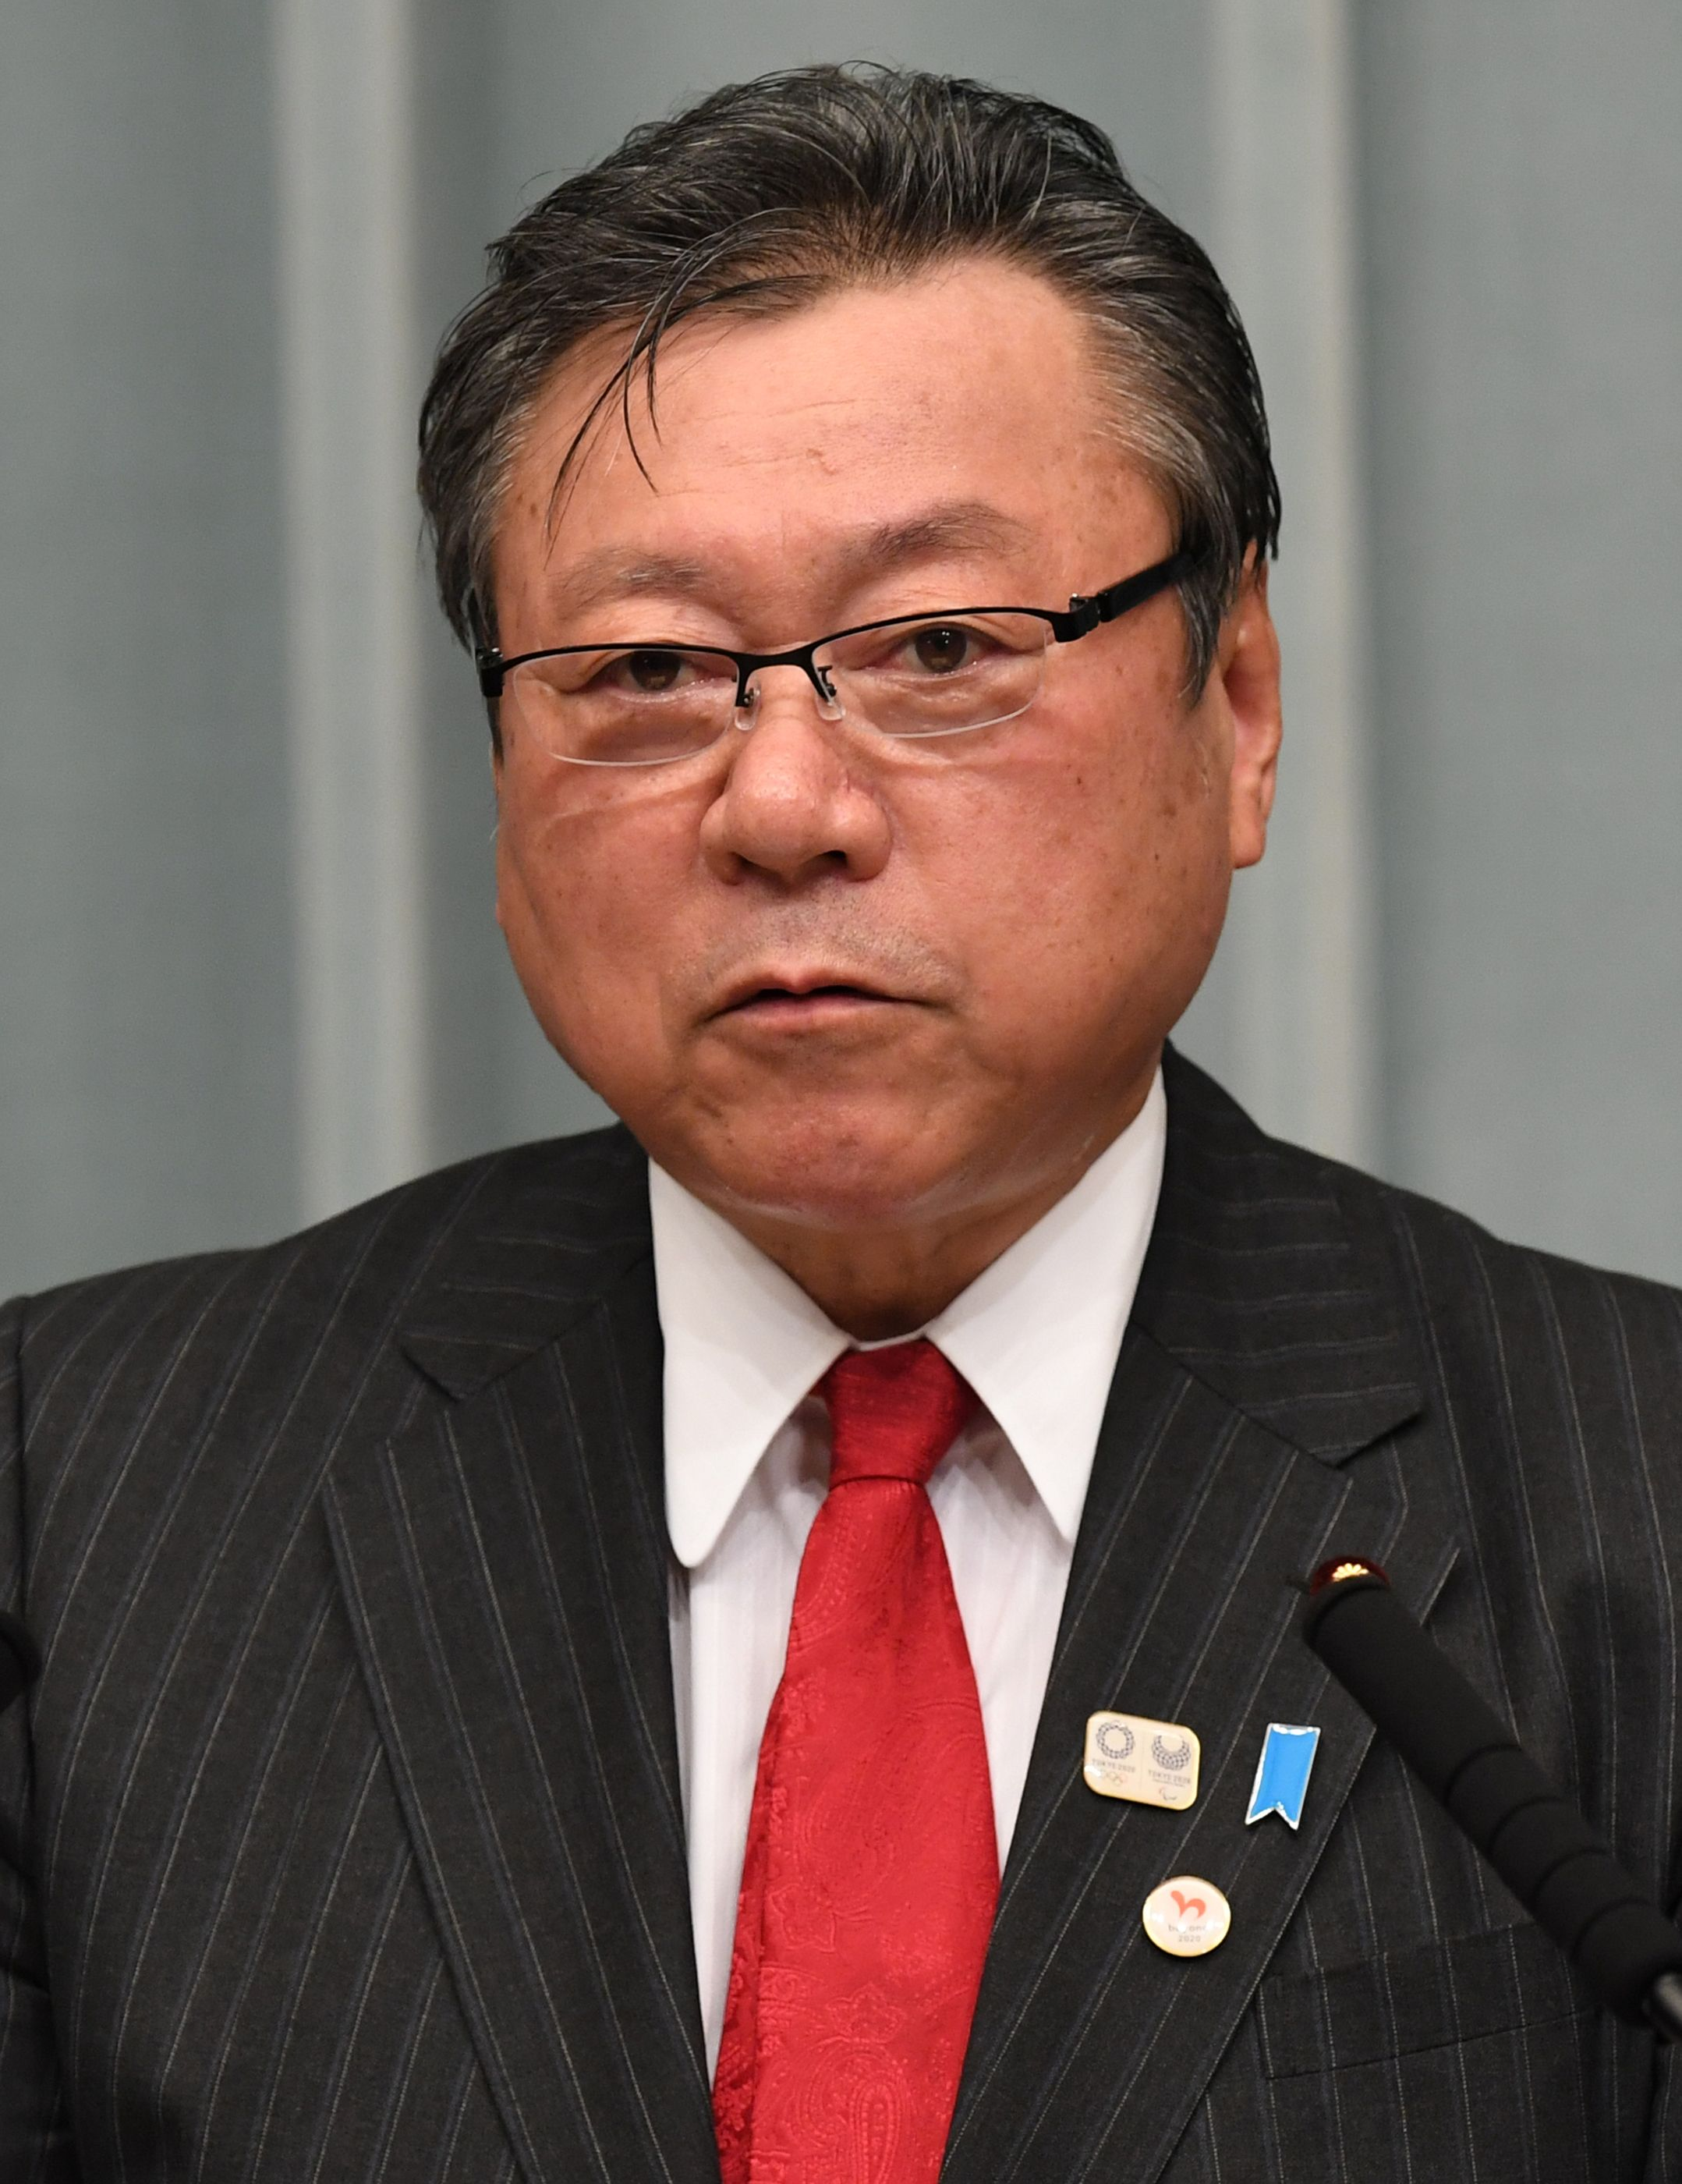 This October 2, 2018 picture shows Yoshitaka Sakurada speaking during his press conference at premier's official residence in Tokyo following Prime Minister Shinzo Abe's cabinet reshuffle.